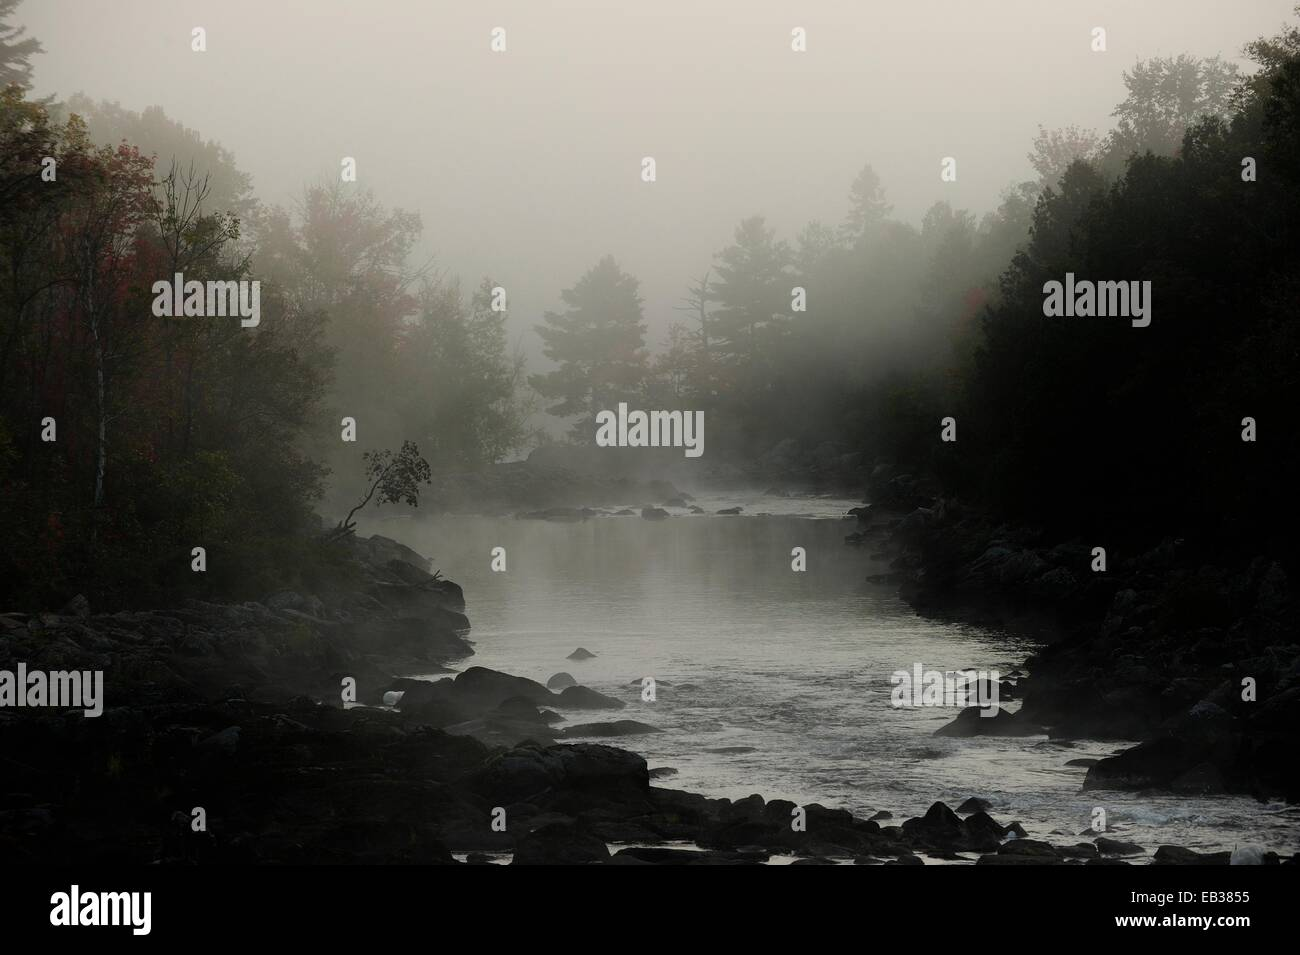 Mystical, misty morning mood, Algonquin Provincial Park, Ontario Province, Canada - Stock Image